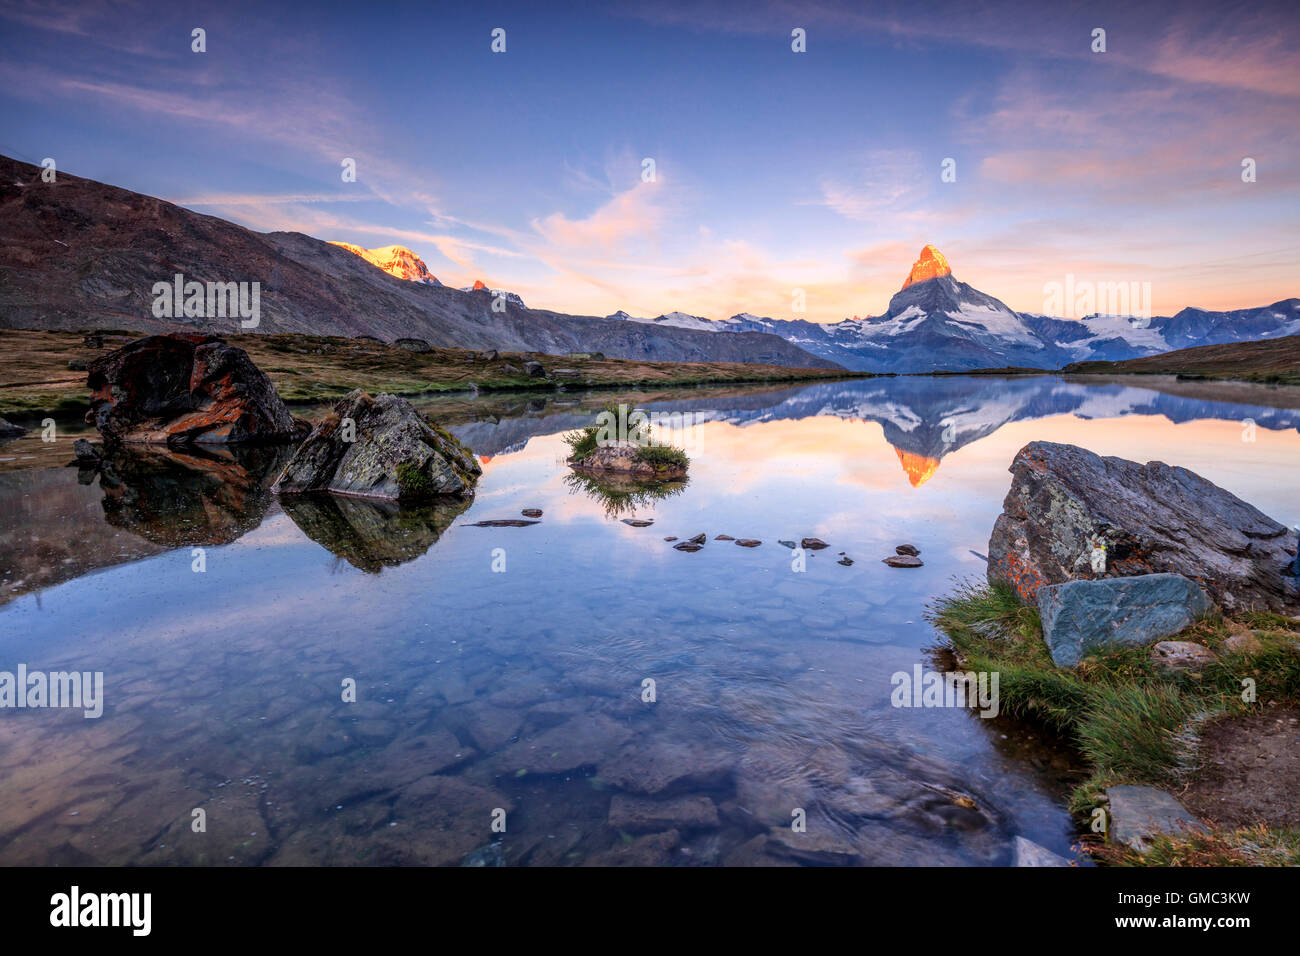 Matterhorn reflected in Lake Stellisee at dawn Zermatt Canton of Valais Pennine Alps Switzerland Europe - Stock Image